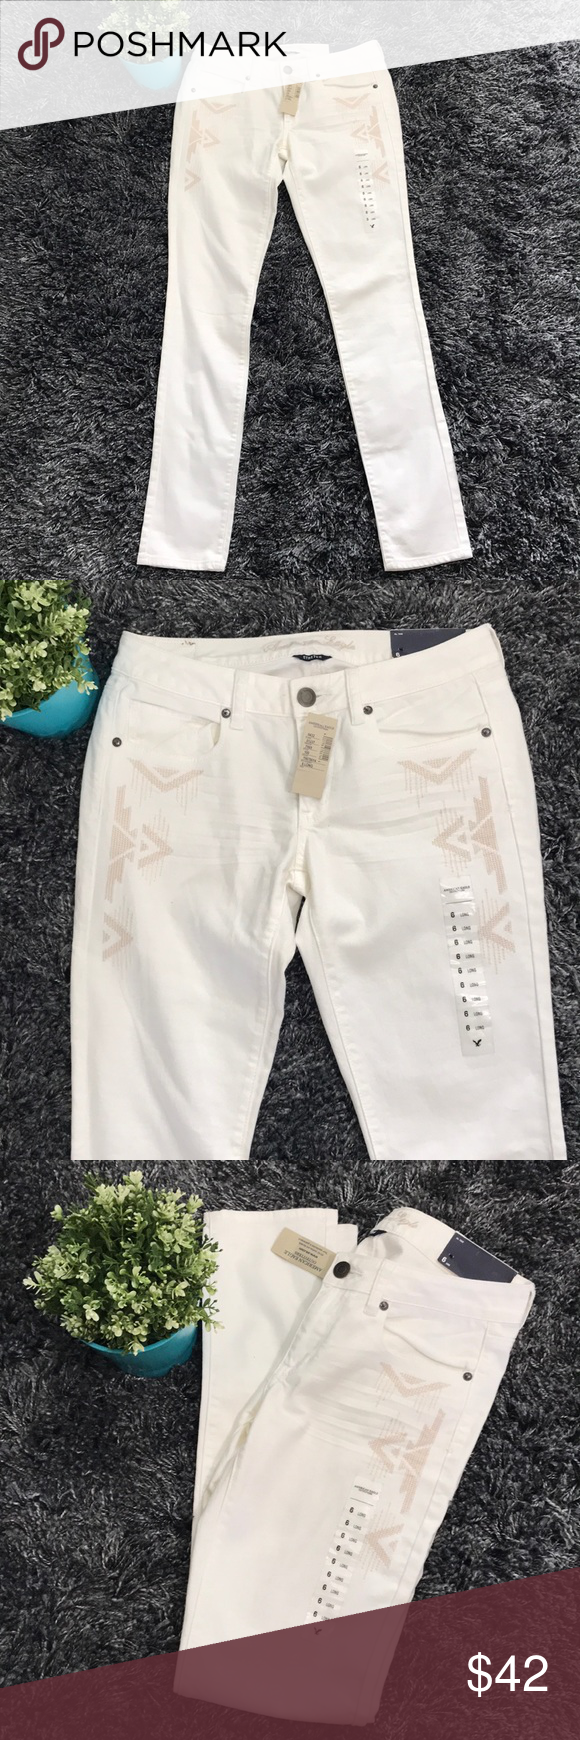 87095ee918cd51 American eagle skinny long pants NWT skinny long stretch pants, color is  more like in shell white. Gorgeous embroidery design in pockets. 😍 Inseam  approx.